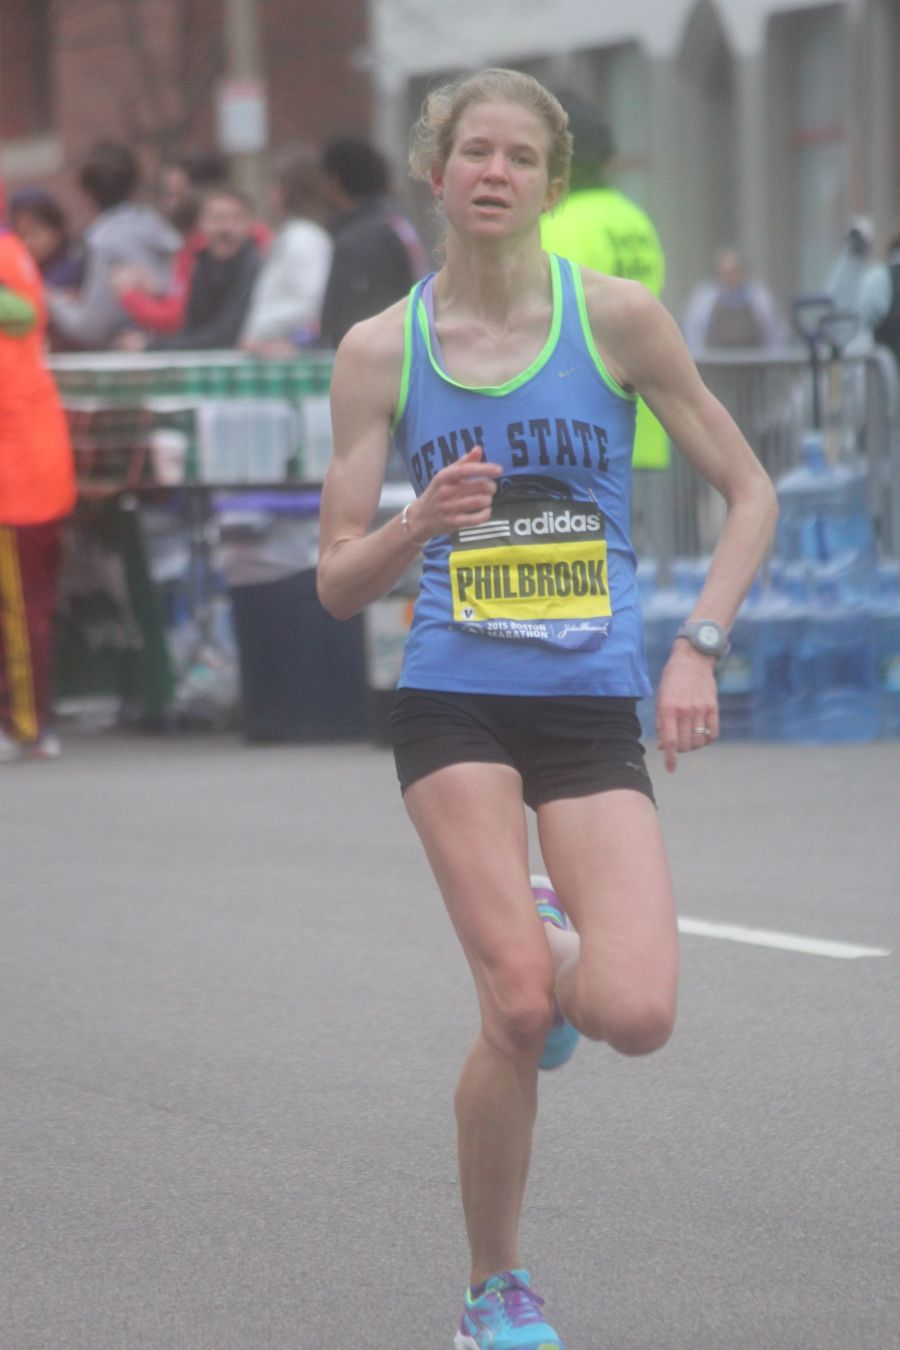 boston marathon april 20 2015 womens elite race lauren philbrook